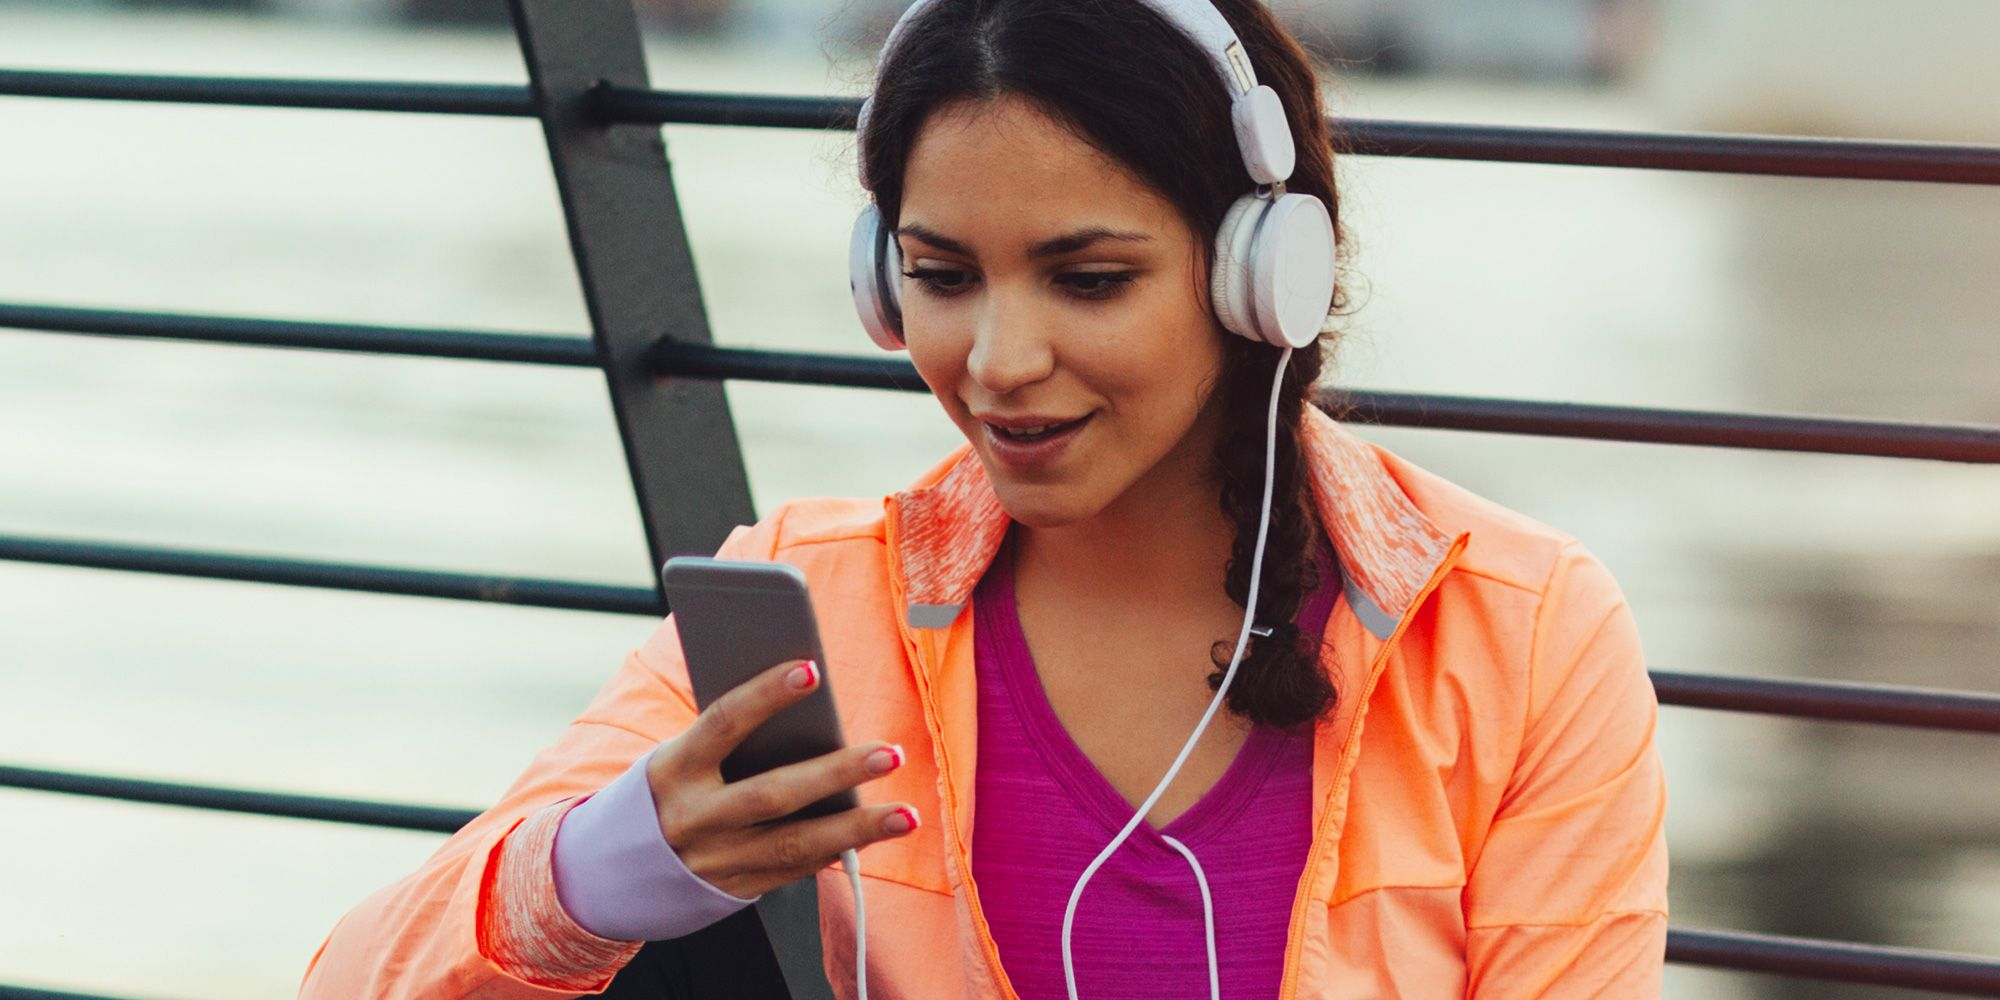 The Best Workout Apps, According To Top Trainers